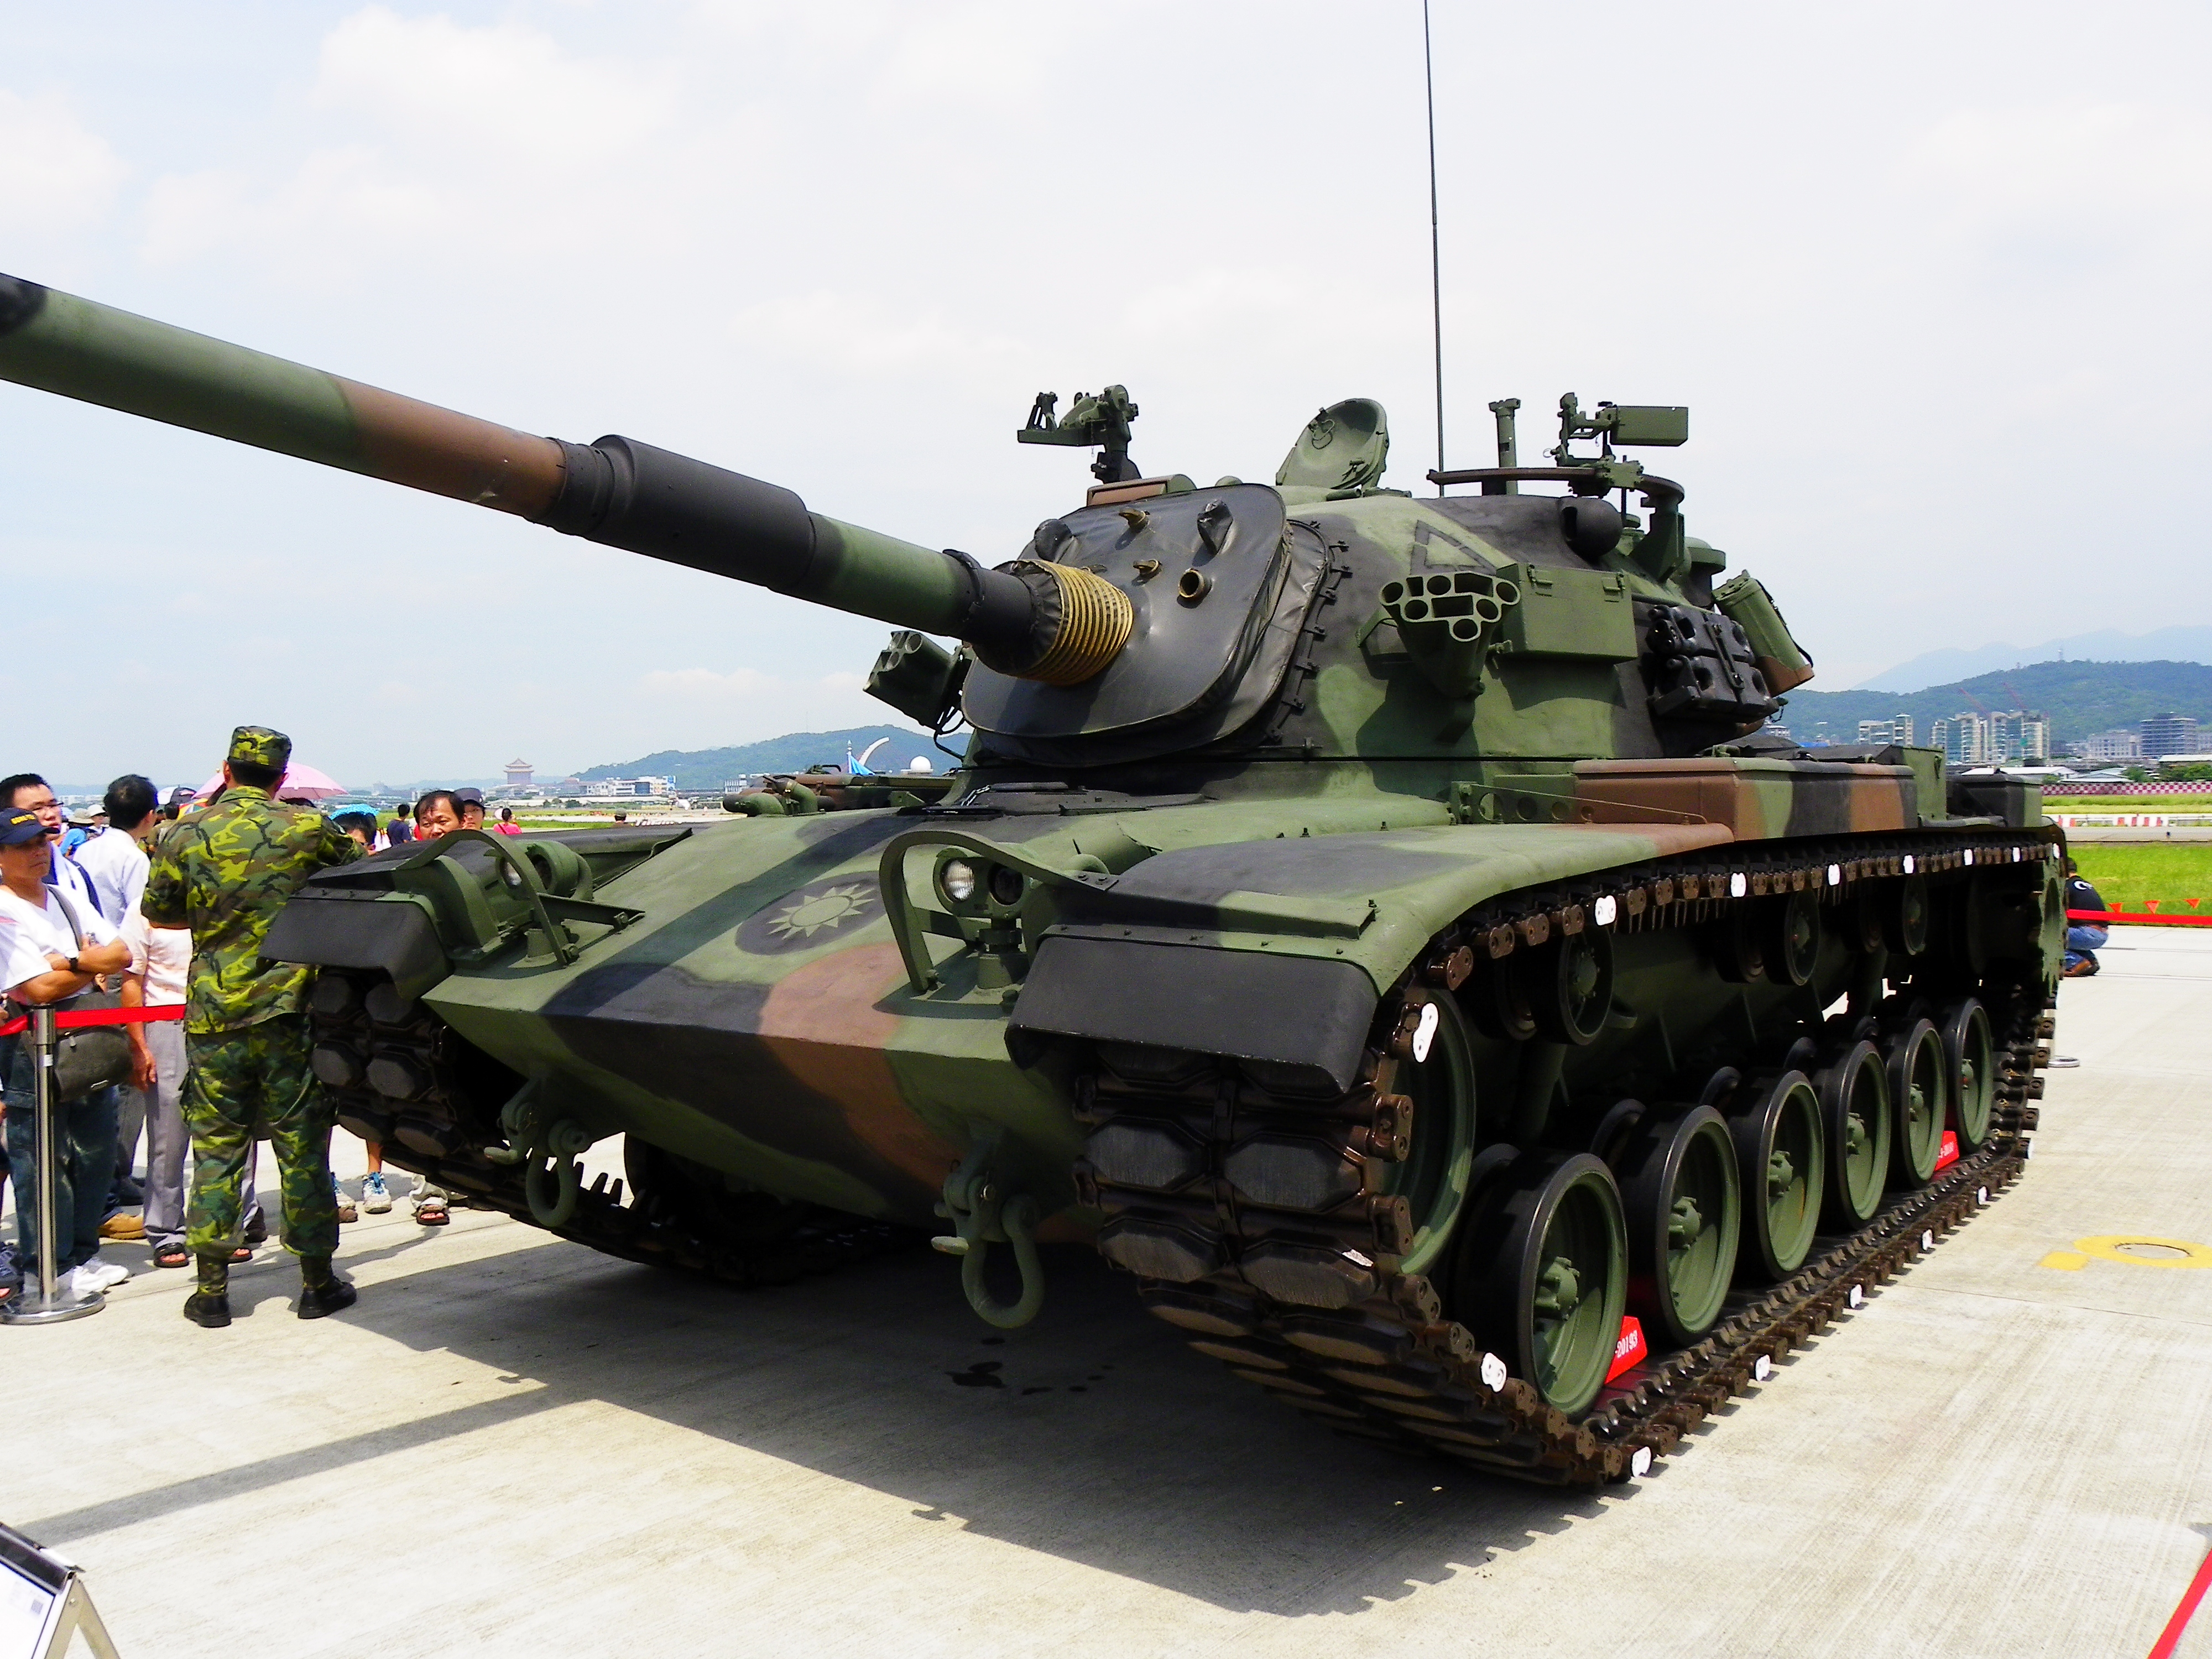 Description cm-11 tank in songshan air force base 20110813